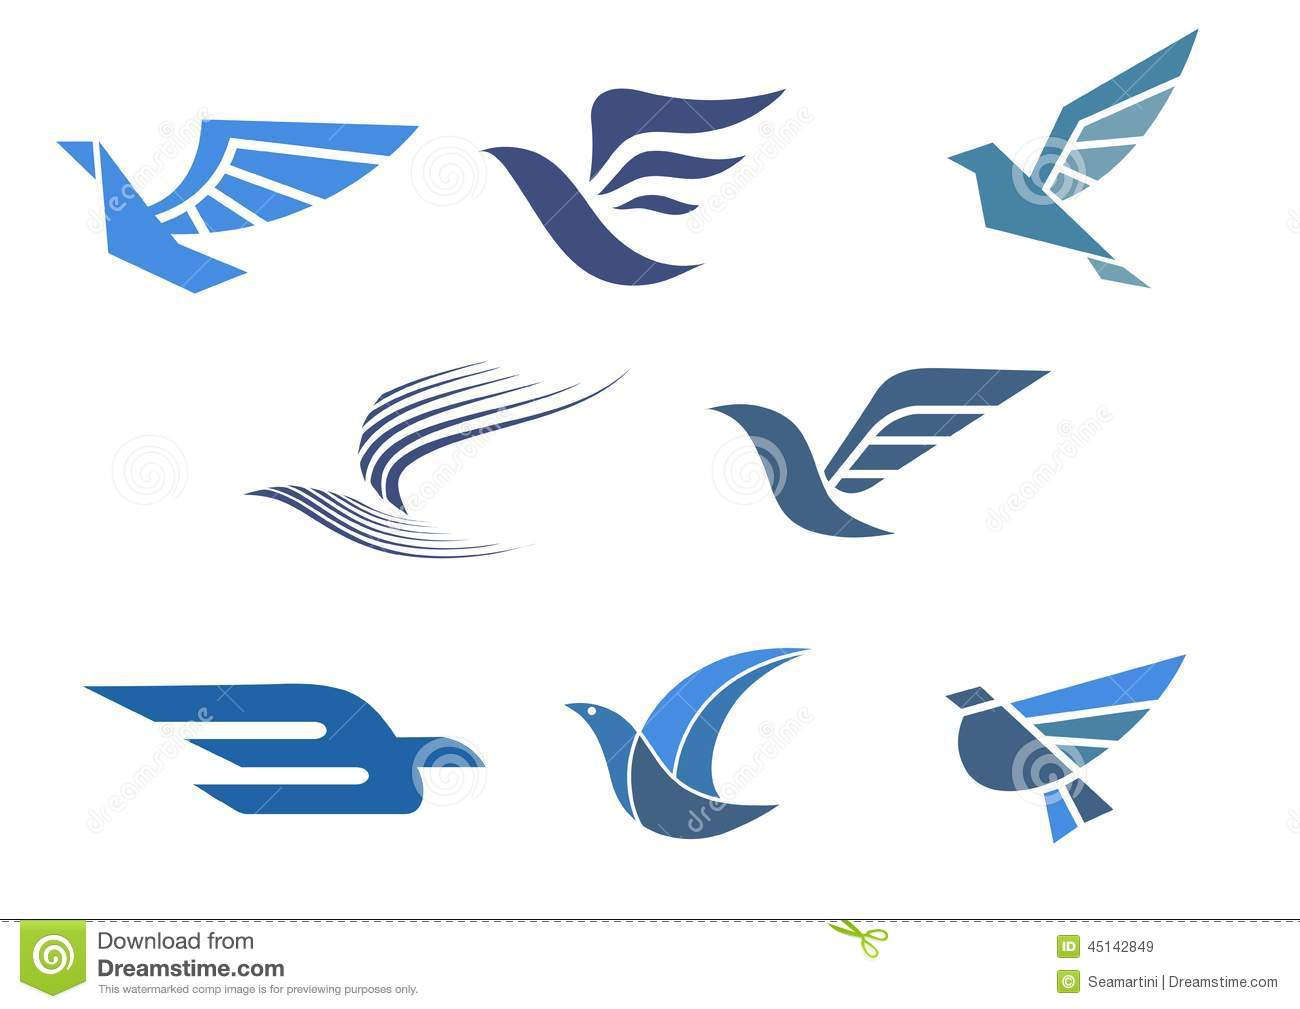 Delivery And Shipping Symbols With Abstract Stylized Flying Bird